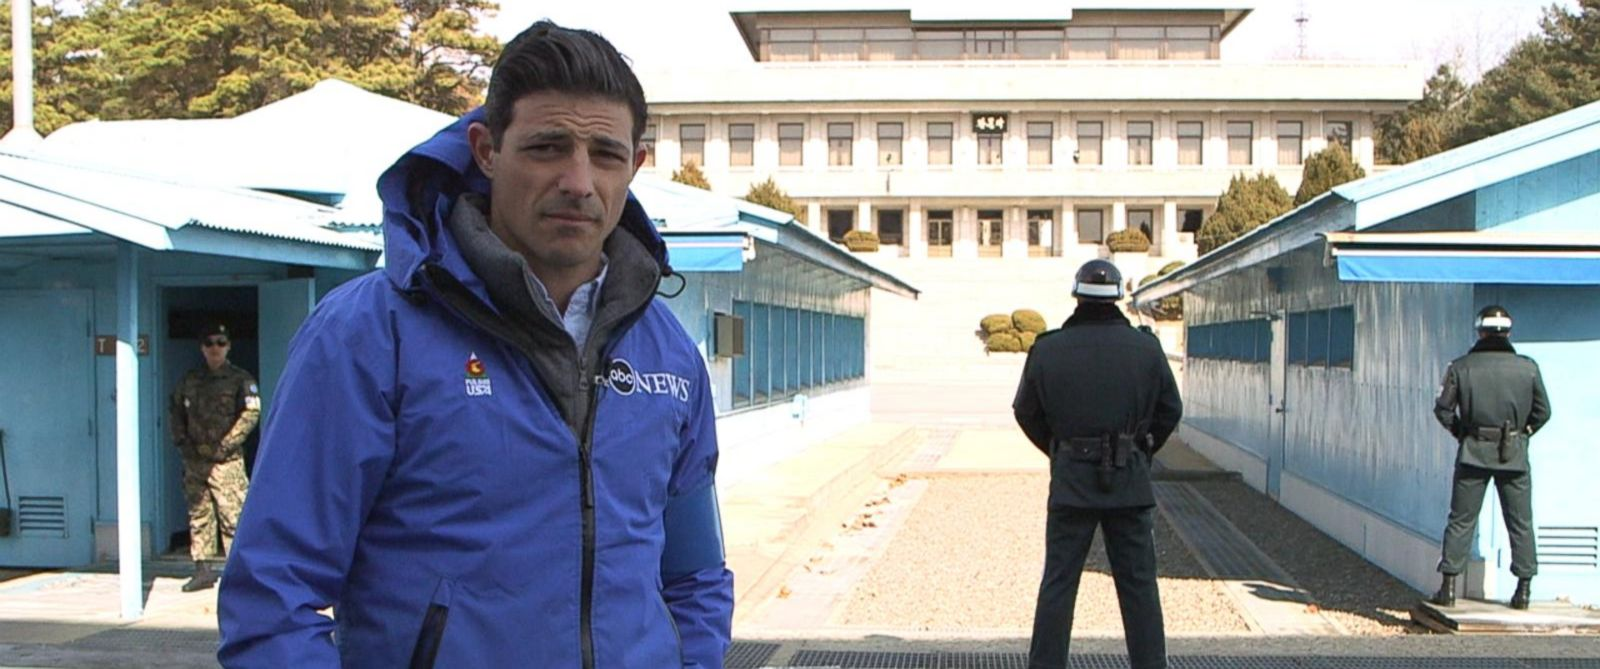 VIDEO: ABC News' Matt Gutman reports from the Korean Demilitarized Zone.